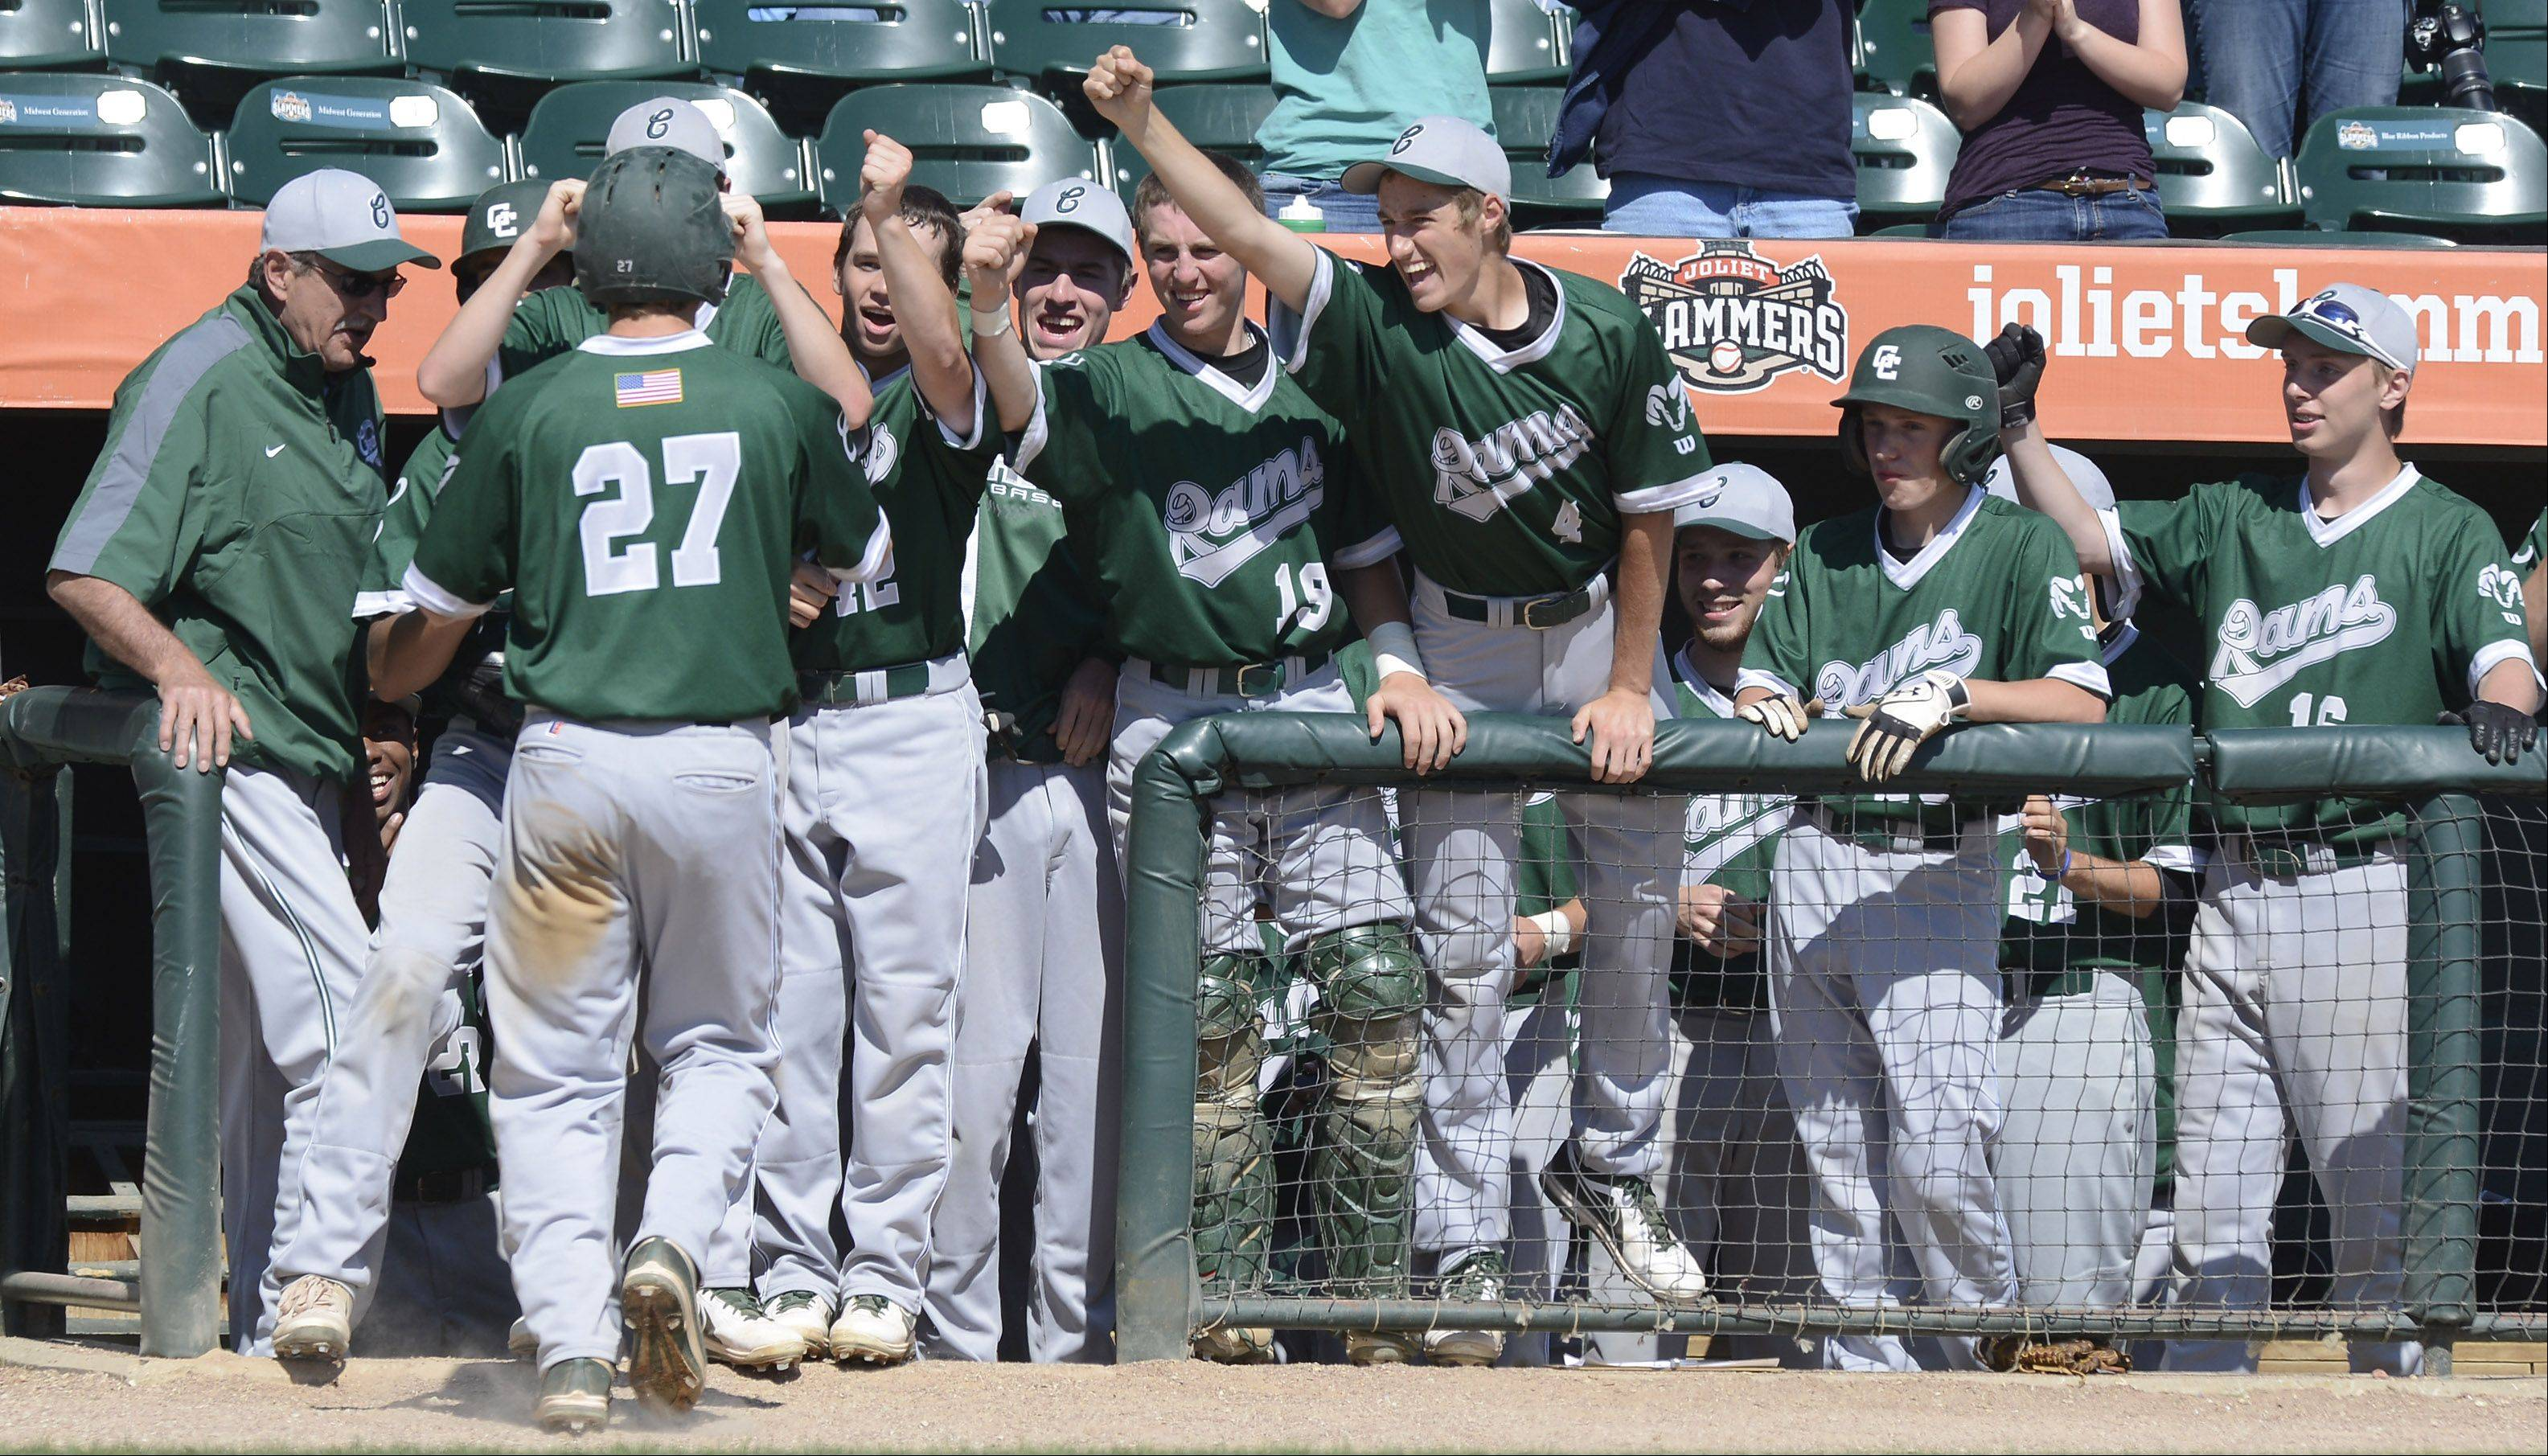 Grayslake Central players greet pinch runner Danny Reed as he returns to the dugout after scoring the game's lone run during the Class 3A state baseball third-place game against Mt. Vernon at Silver Cross Field in Joliet Saturday.